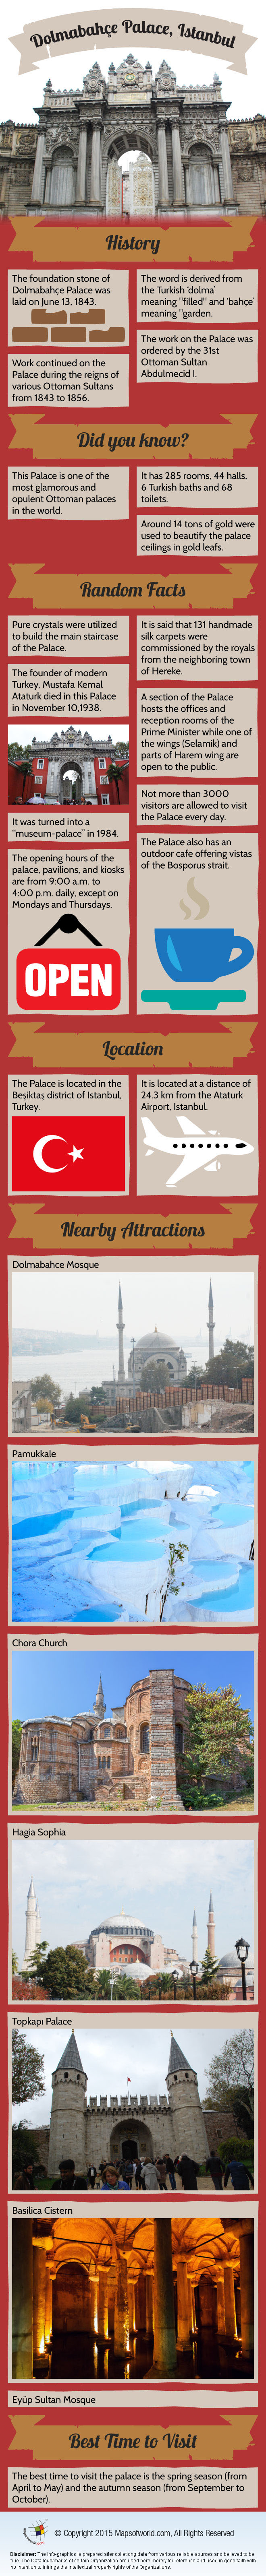 Infographic showing facts and information about Dolmabahce Palace in Istanbul